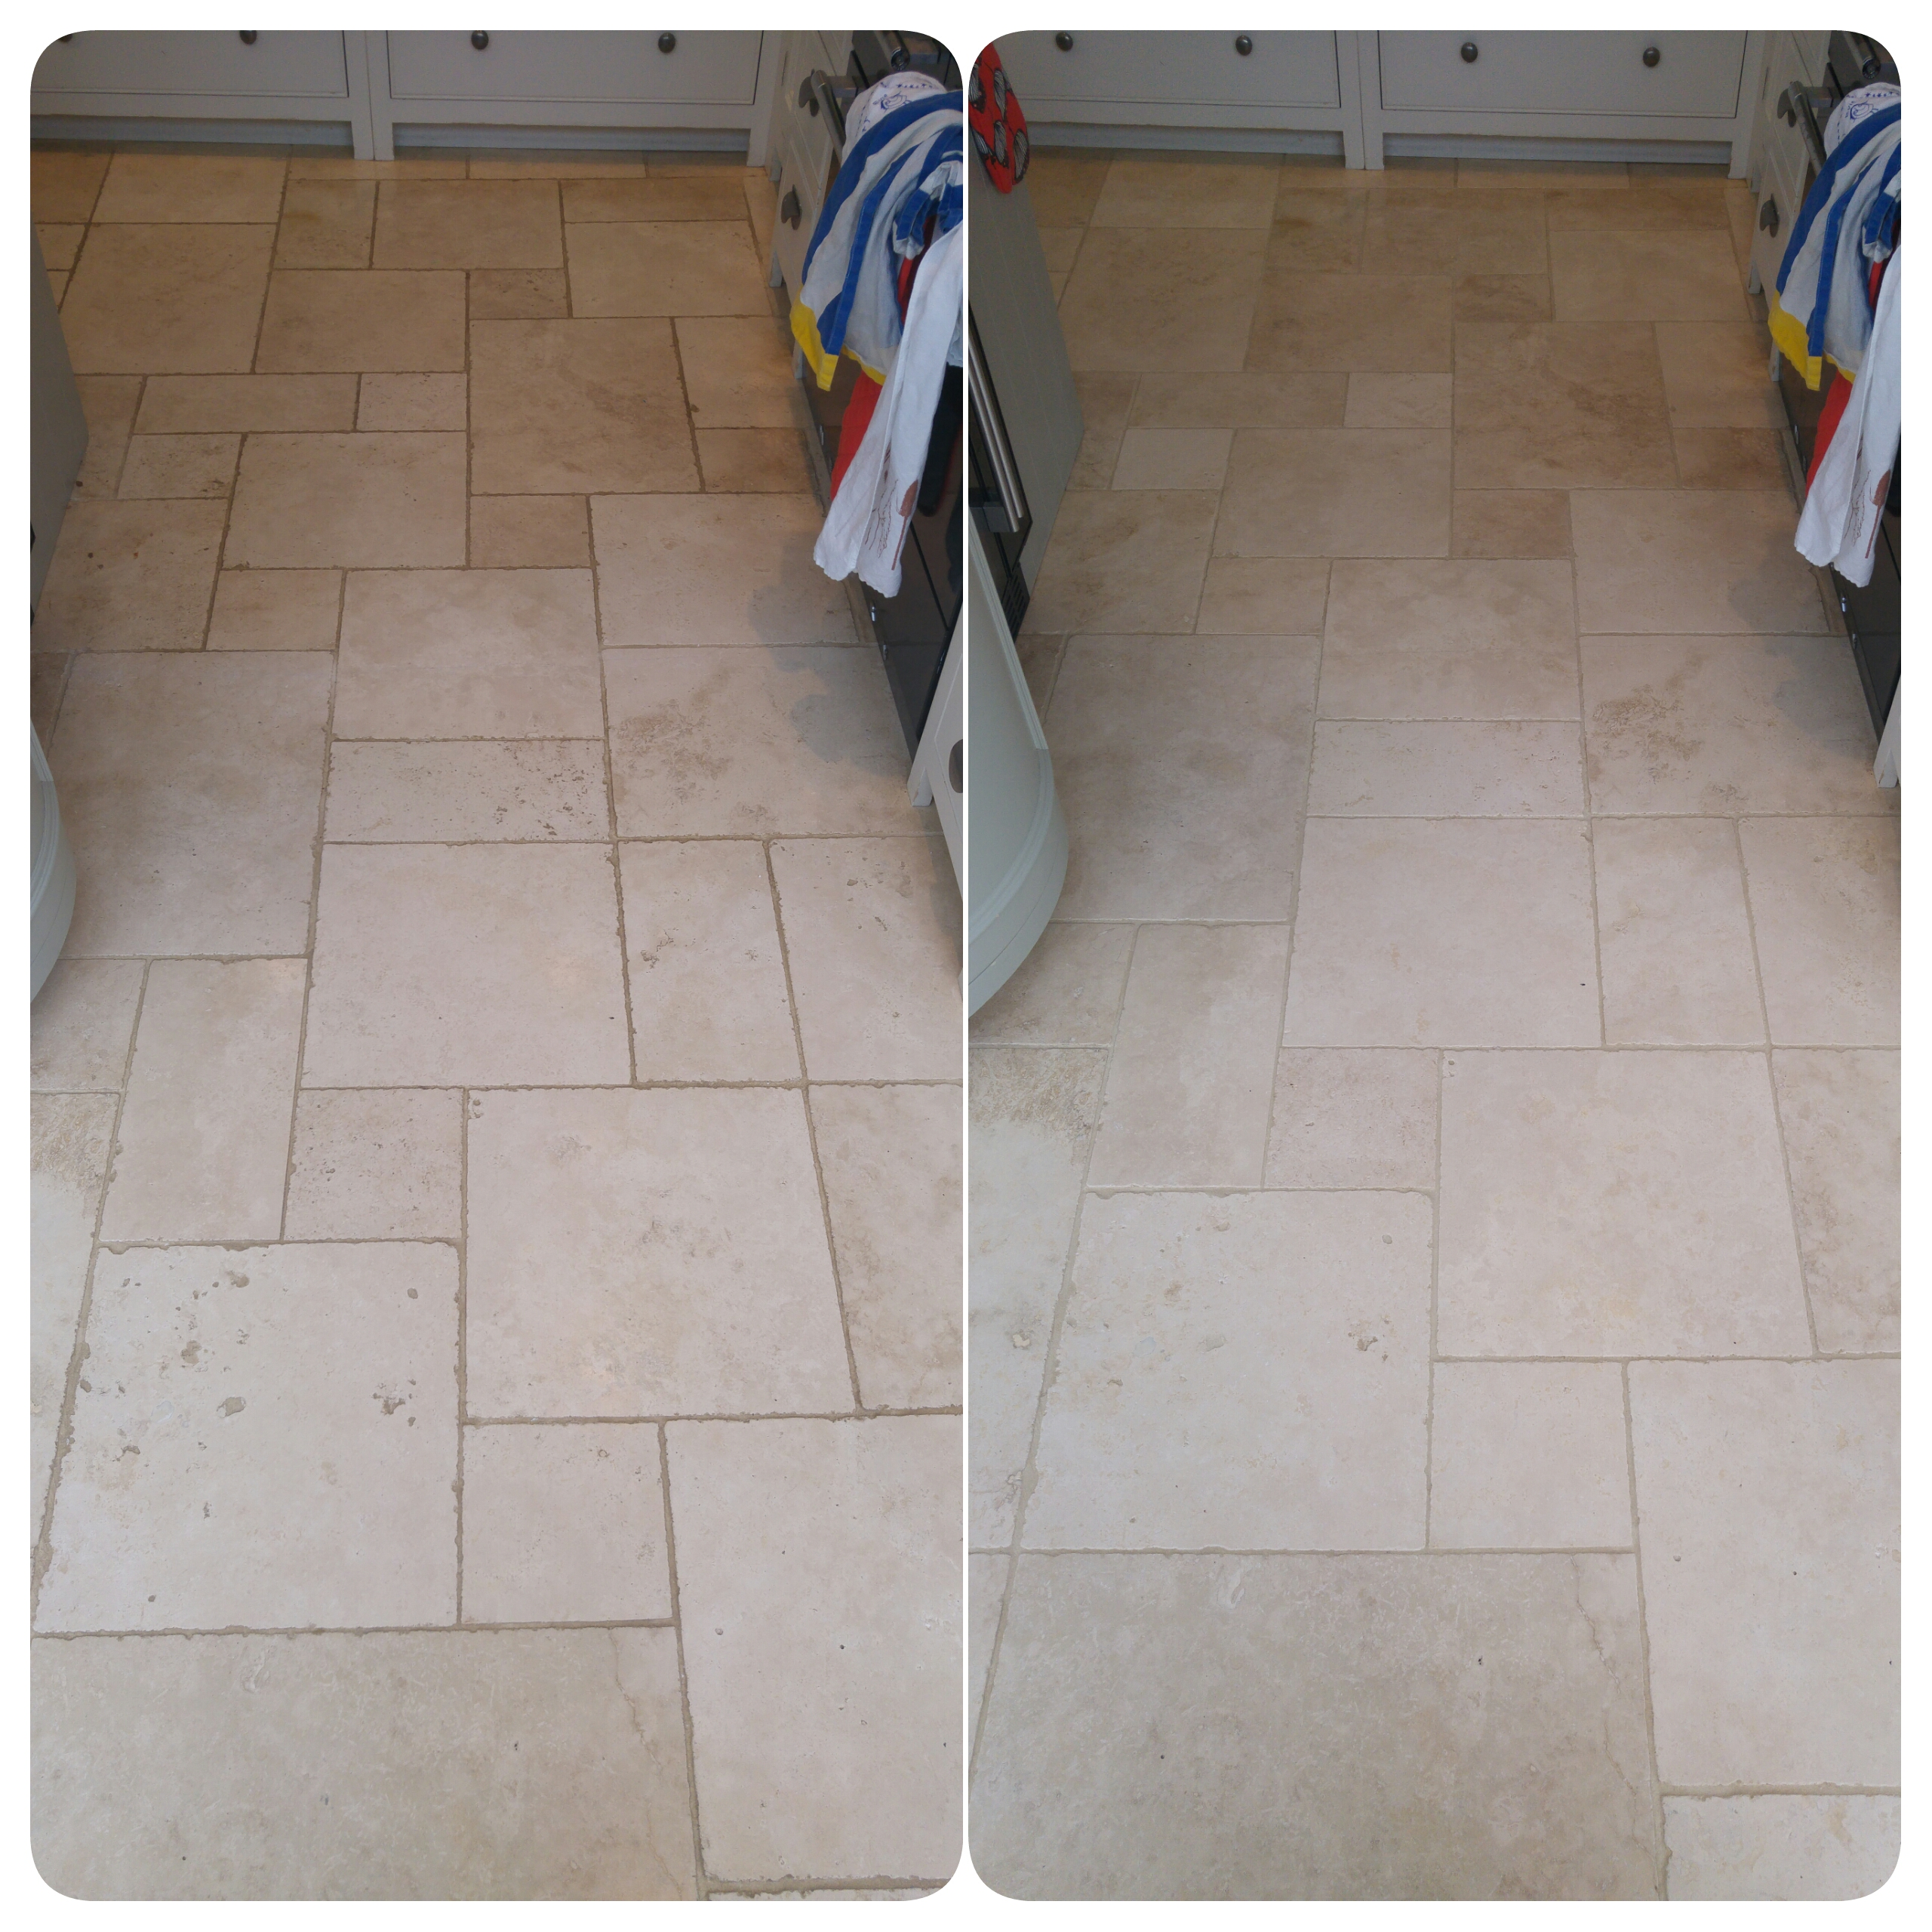 Stone Tile And Grout Cleaning Services, Best Bathroom Tile Grout Cleaner Uk